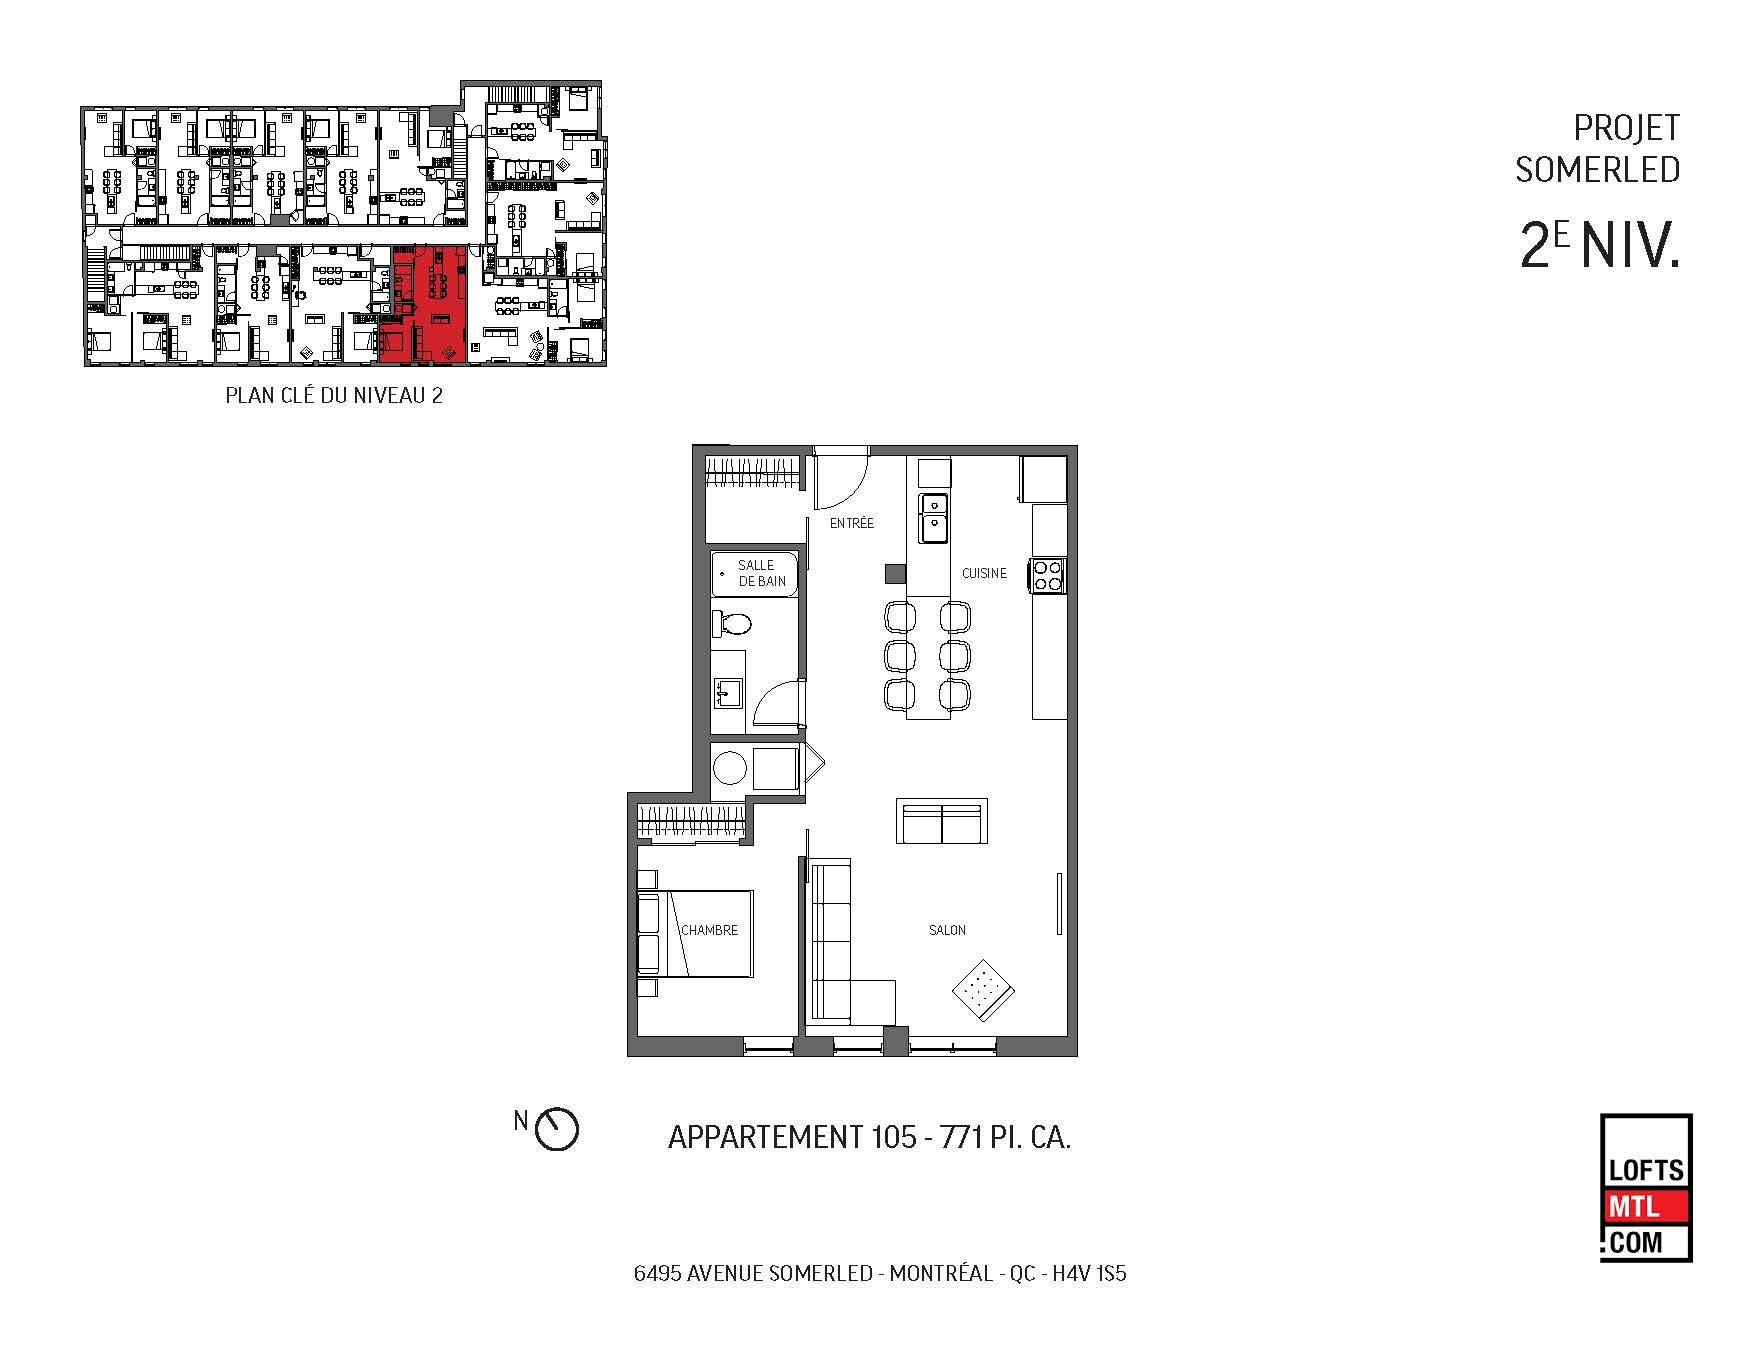 Plans appartements vectoriel Somerled_Page_05.jpg